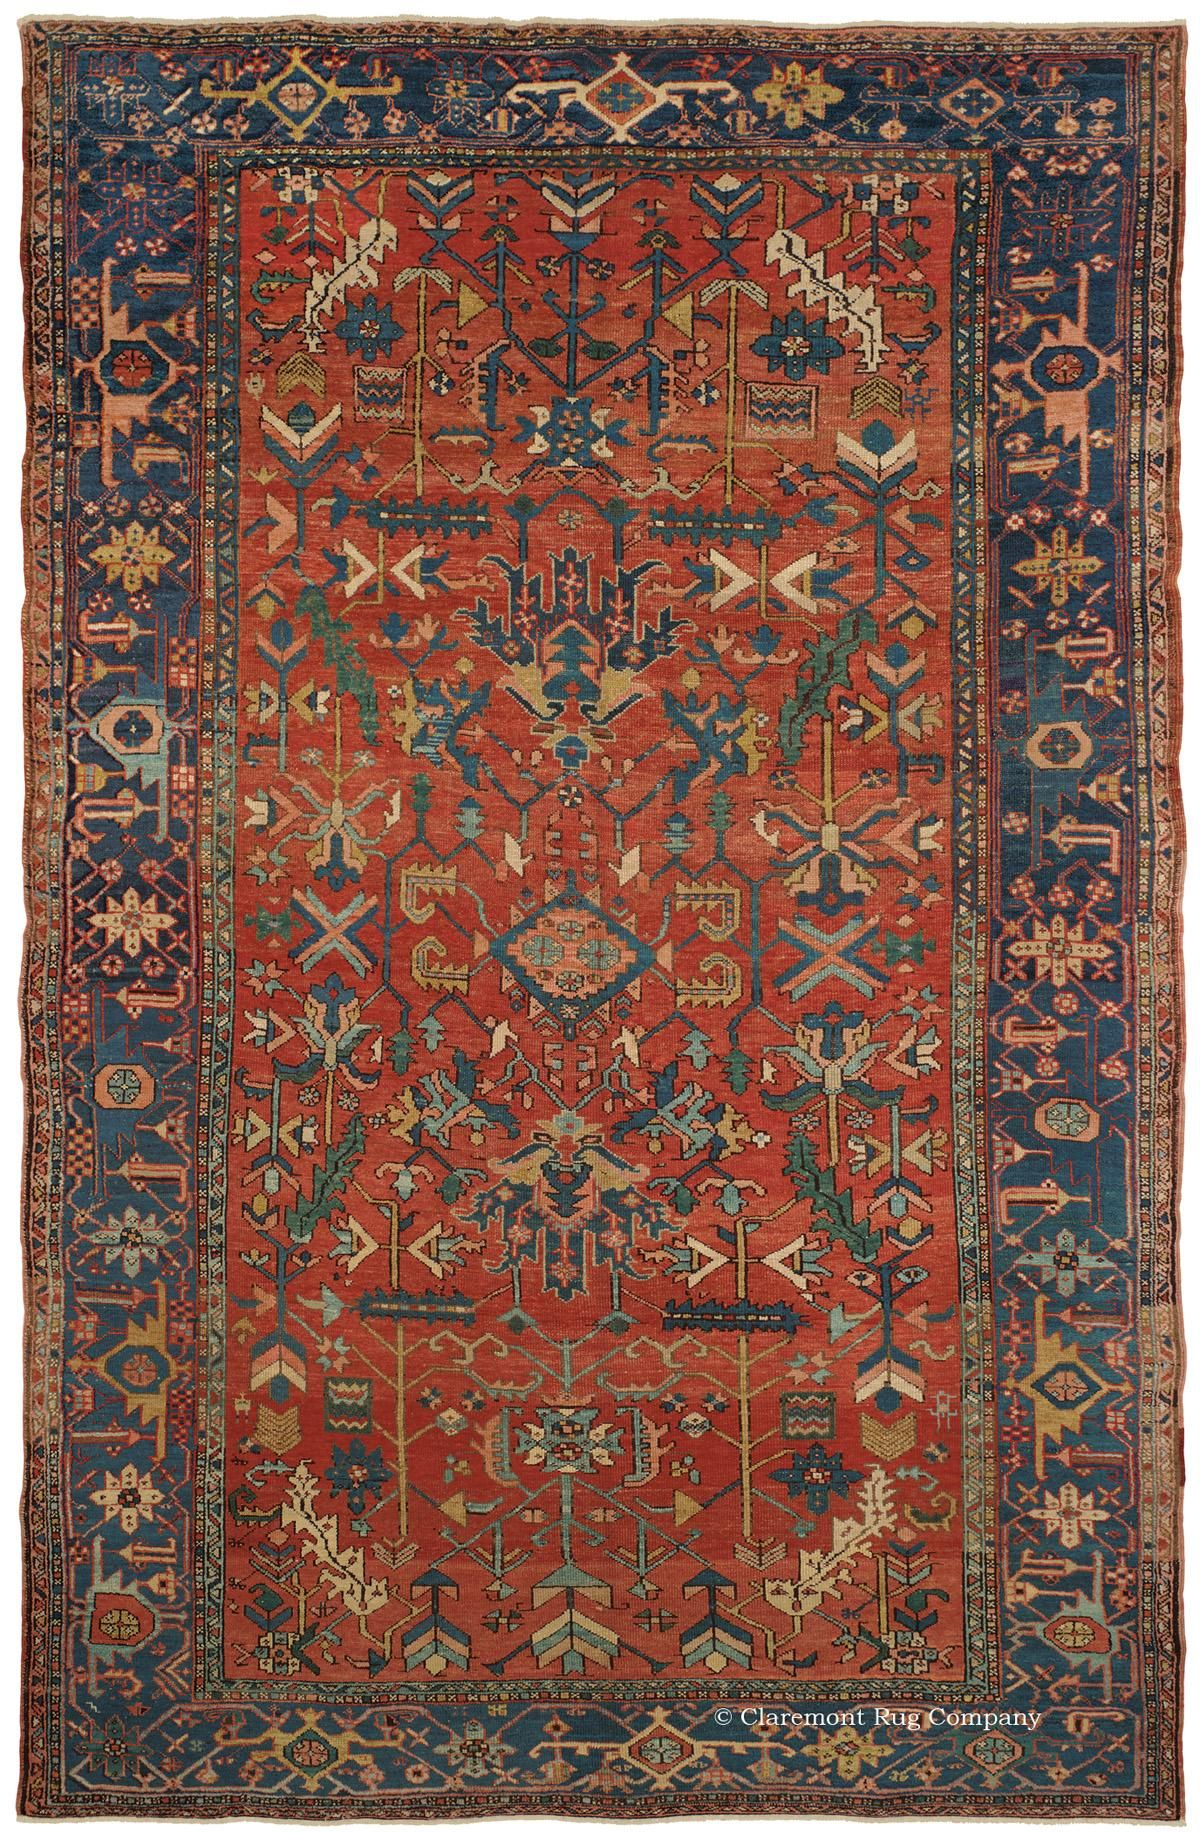 HERIZ, Northwest Persian 8ft 2in x 12ft 4in Late 19th Century  This extremely unique antique Persian Serapi Heriz carpet boasts a wondrously inventive all-over pattern composed of unabashedly idiosyncratic archetypal motifs, which are asymmetrically placed on an exuberant naturally dyed persimmon orange field. The composition is framed by a frequently striated, rich sapphire blue border. This folkloric 19th century carpet would have an equally striking effect on either a traditional or…